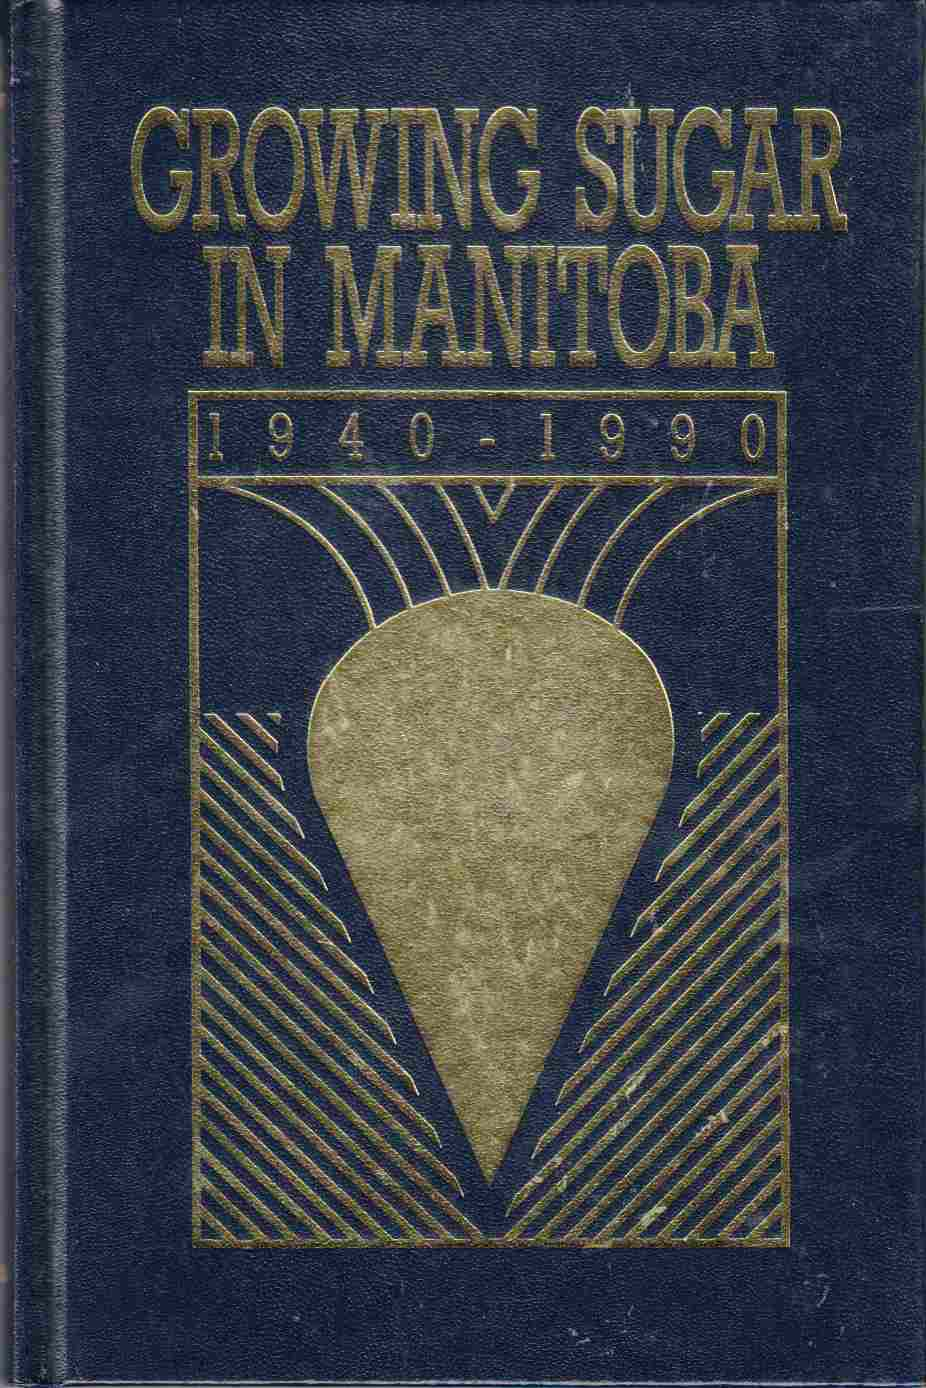 Image for Growing Sugar in Manitoba 1940 - 1990